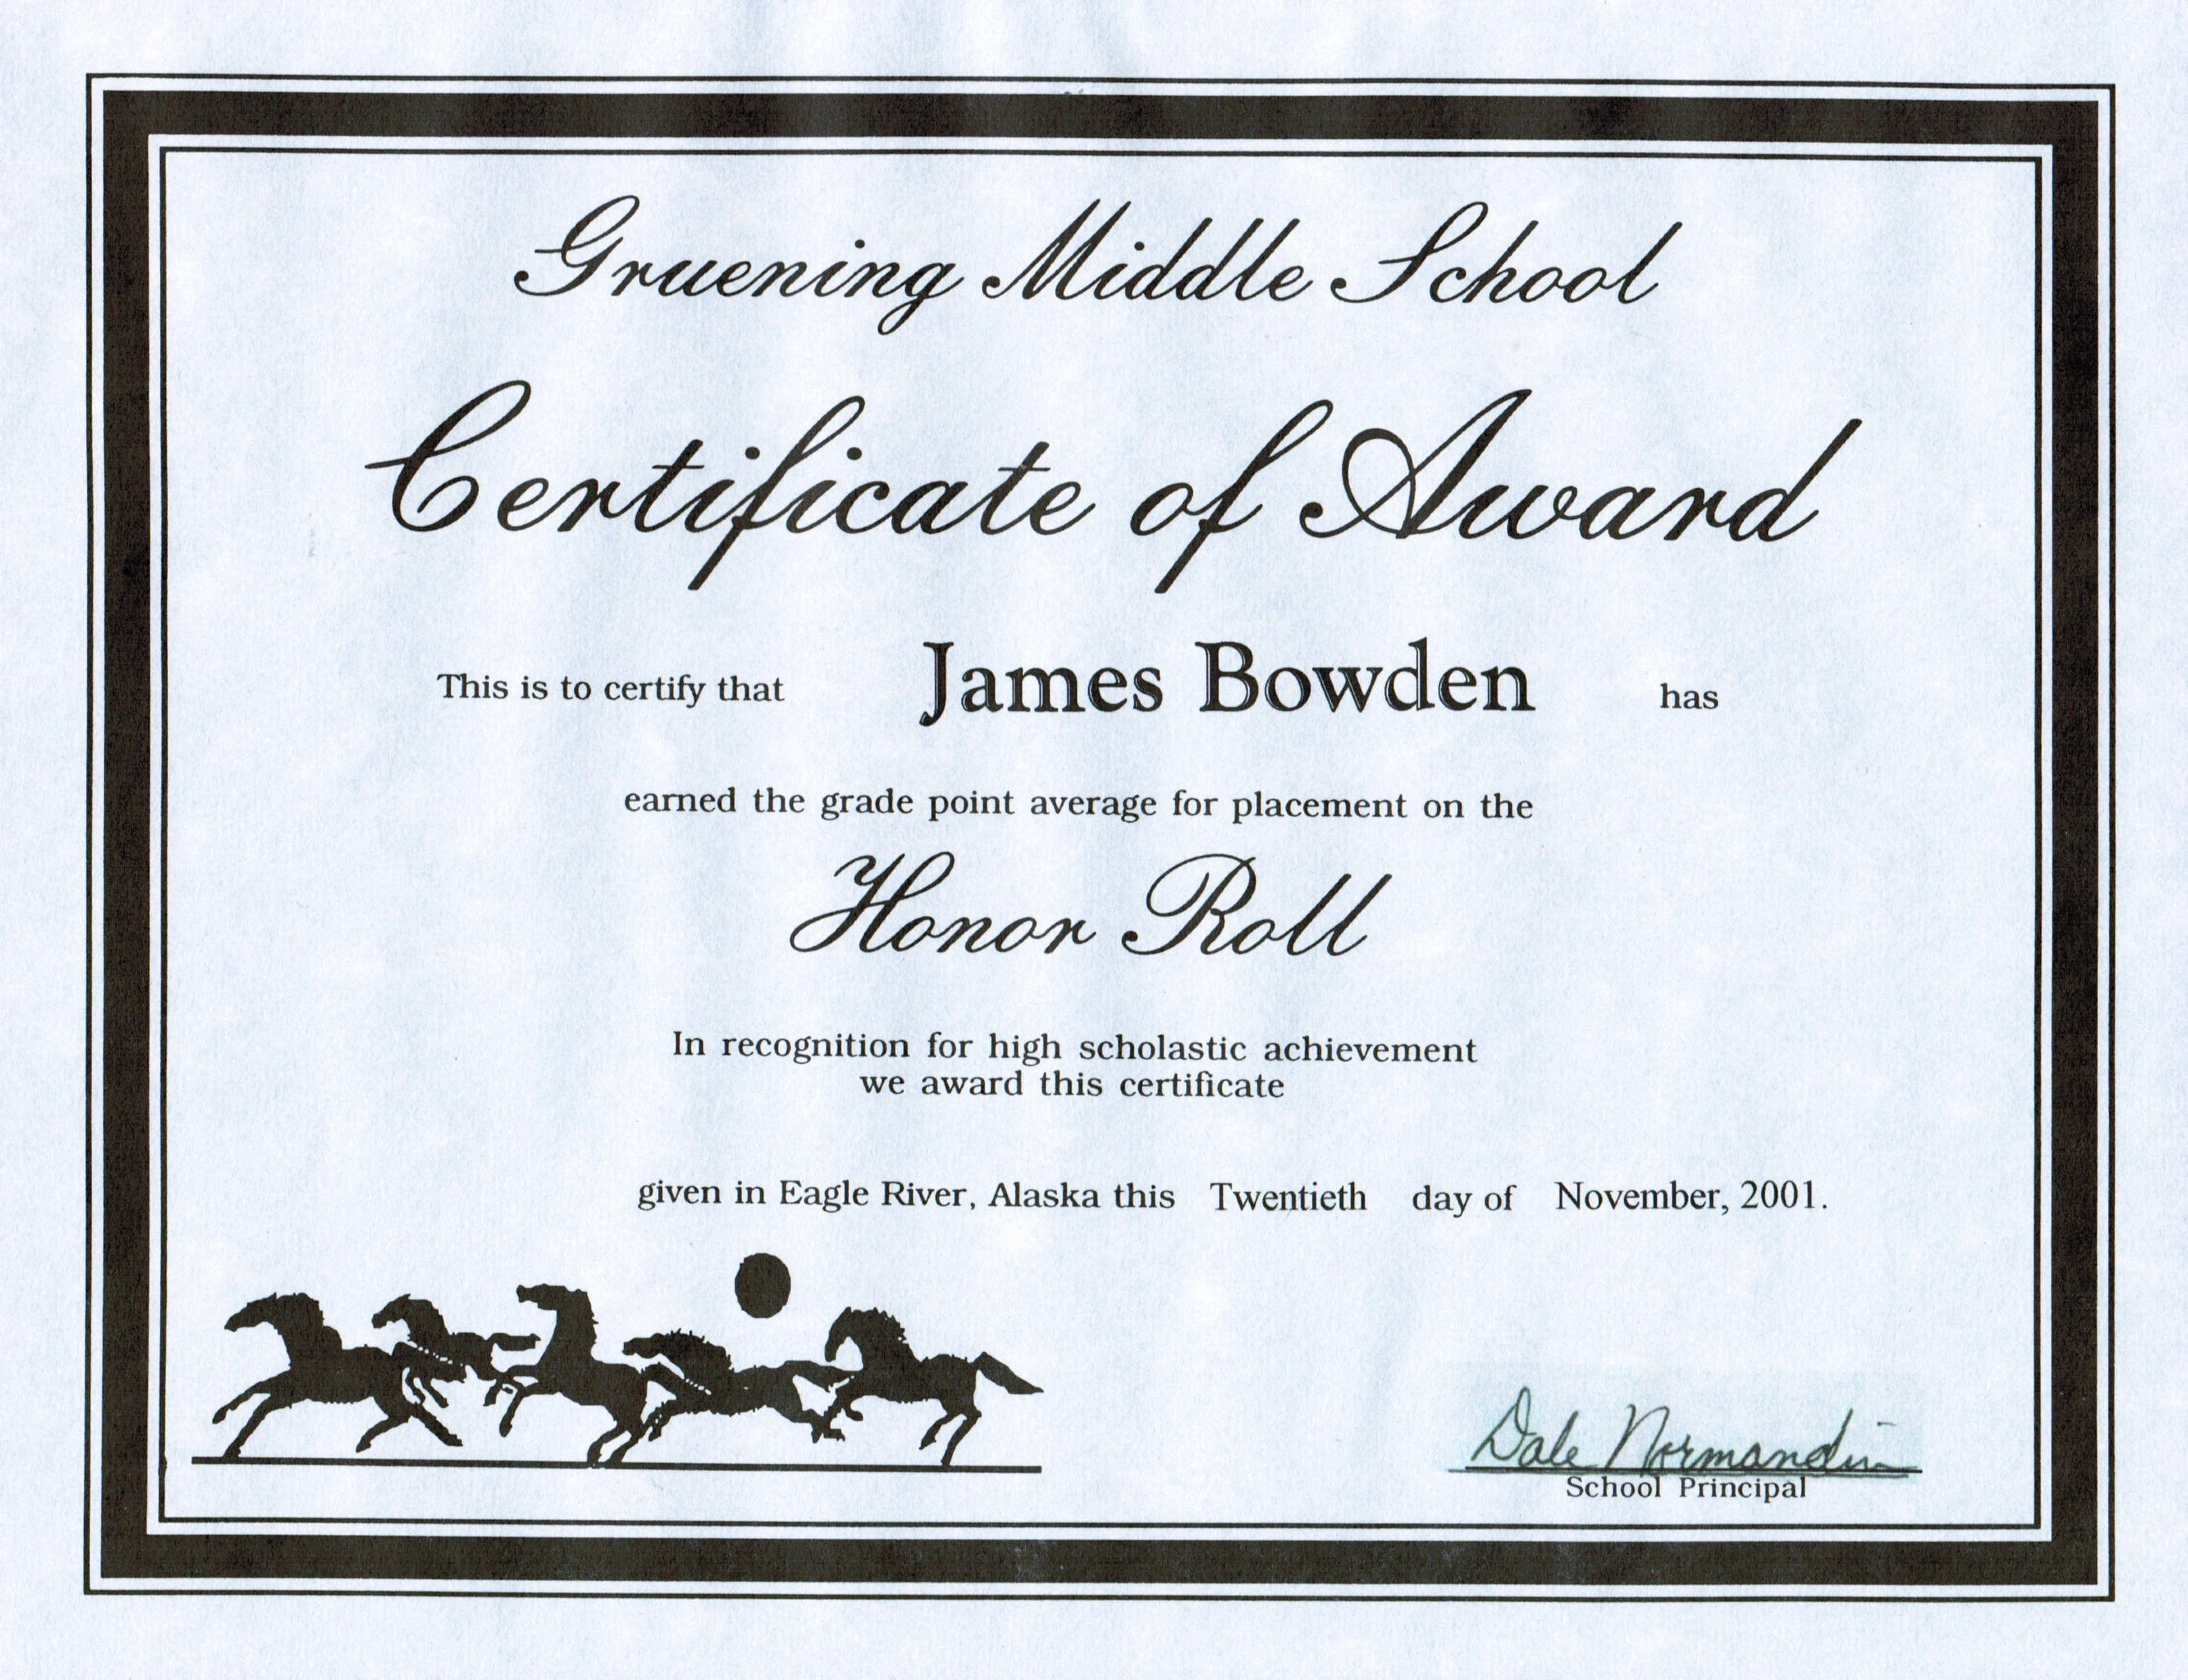 Honor Roll Certificate Template Word Beautiful Award Certificate Template for Word Copy Honor Roll